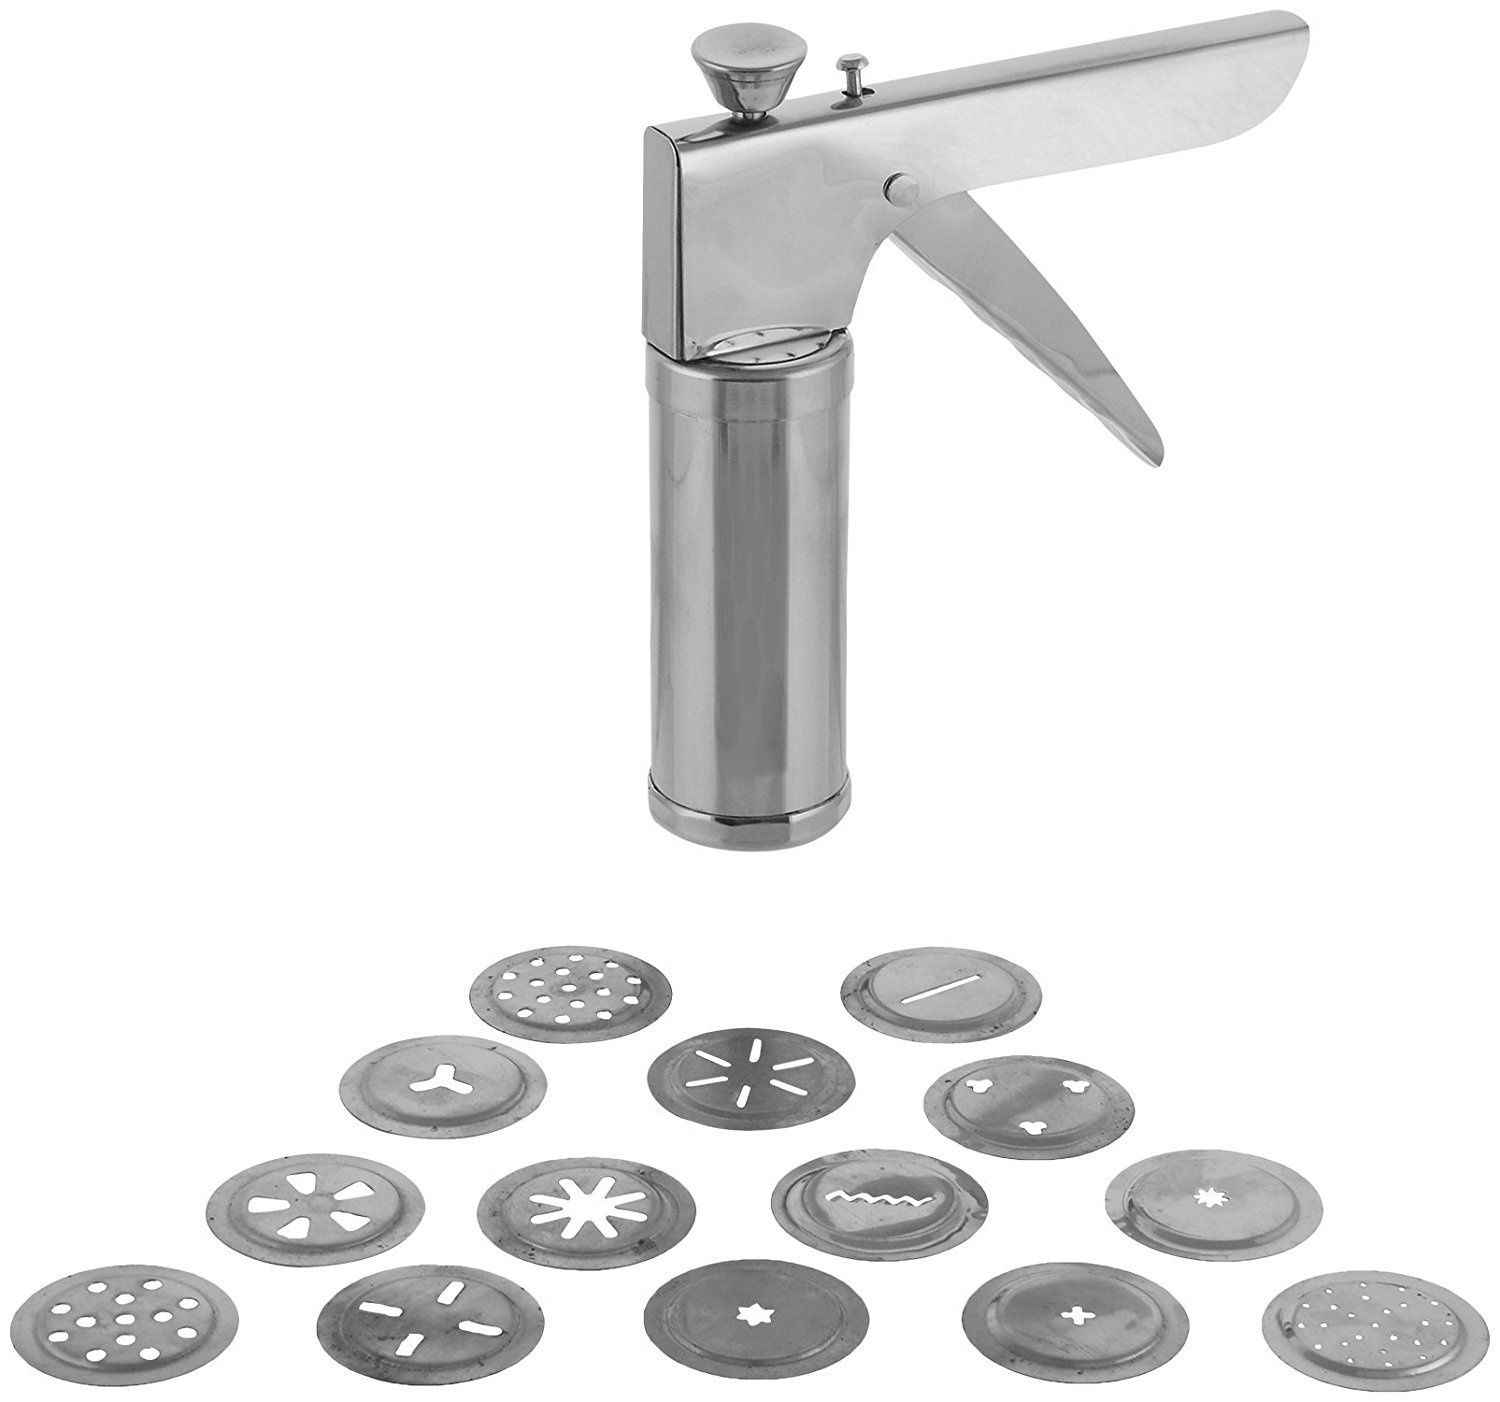 Buy Floraware Stainless Steel Kitchen Press Set, 15-Pieces, Silver ...